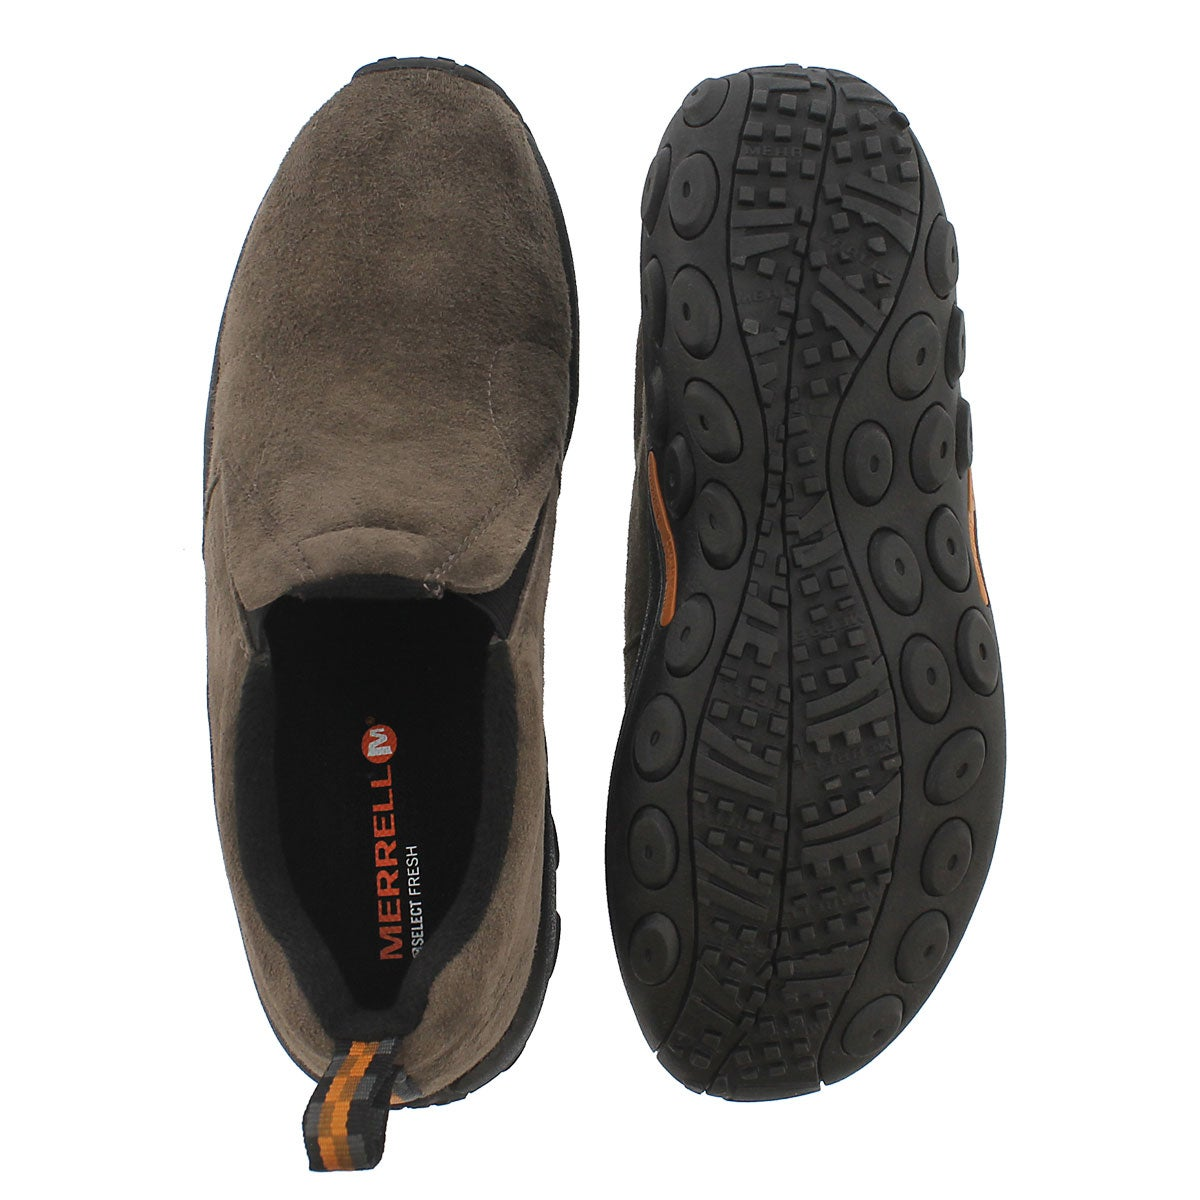 Mns Jungle Moc gunsmoke 2 gore slip on